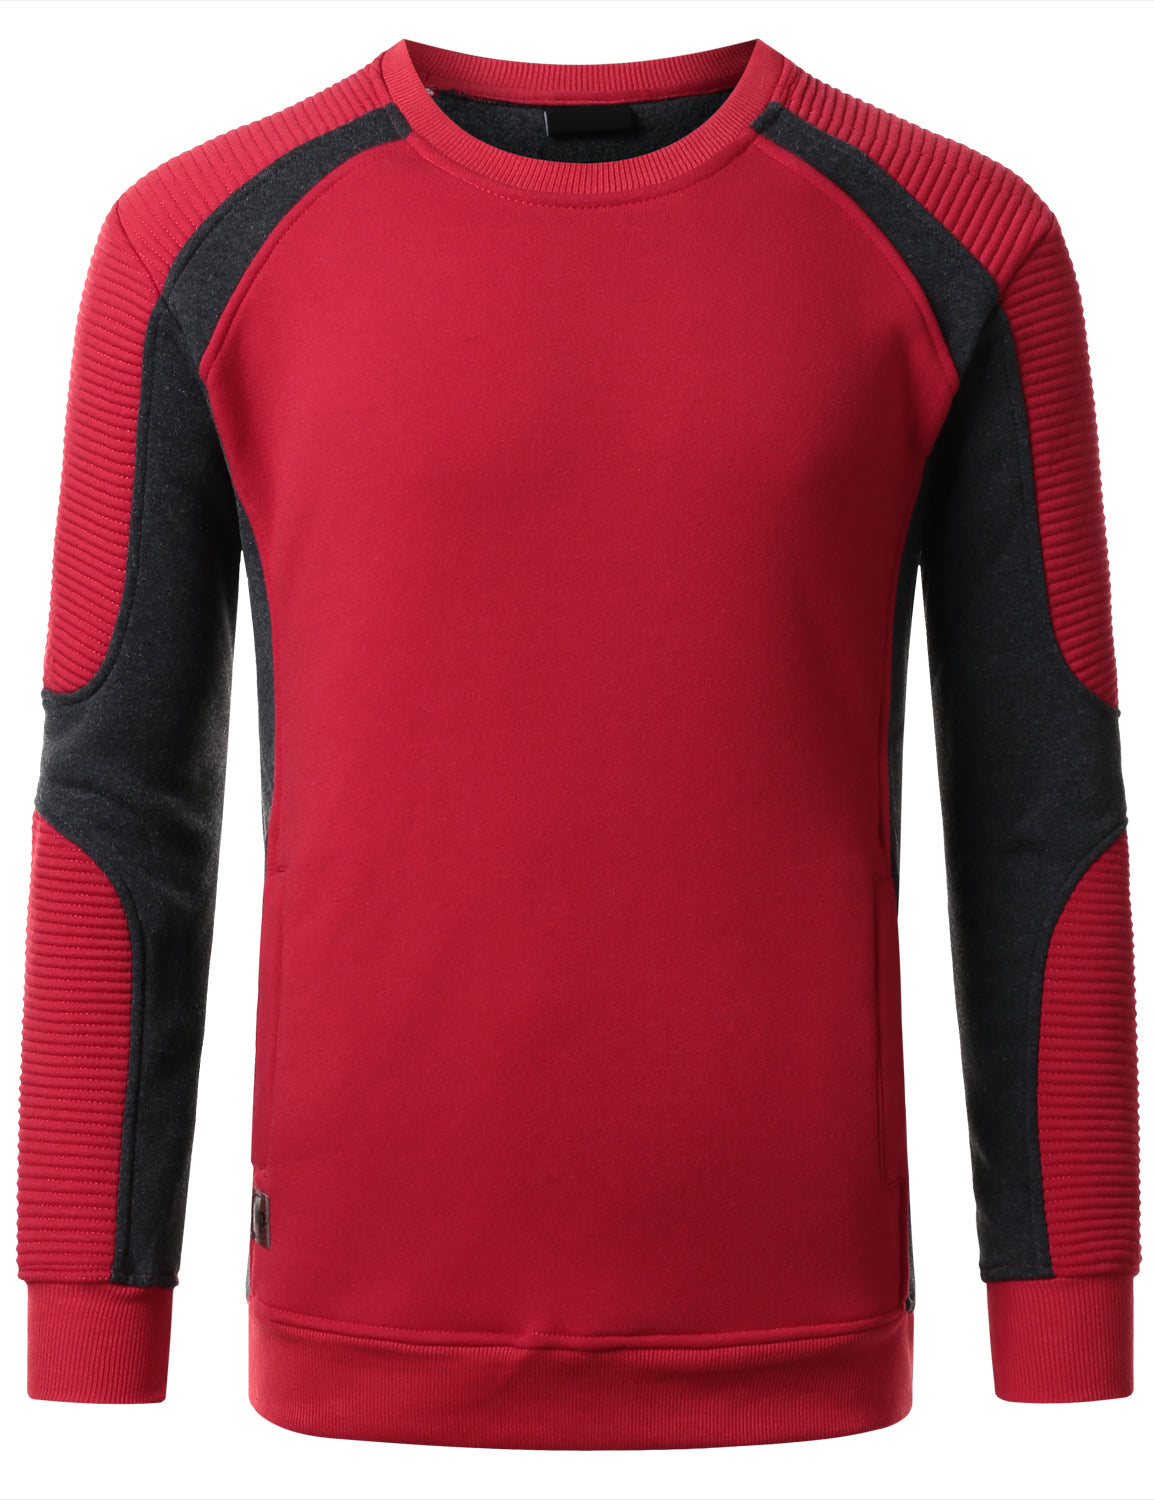 RED Basic Ribbed Crewneck Sweatshirt - URBANCREWS